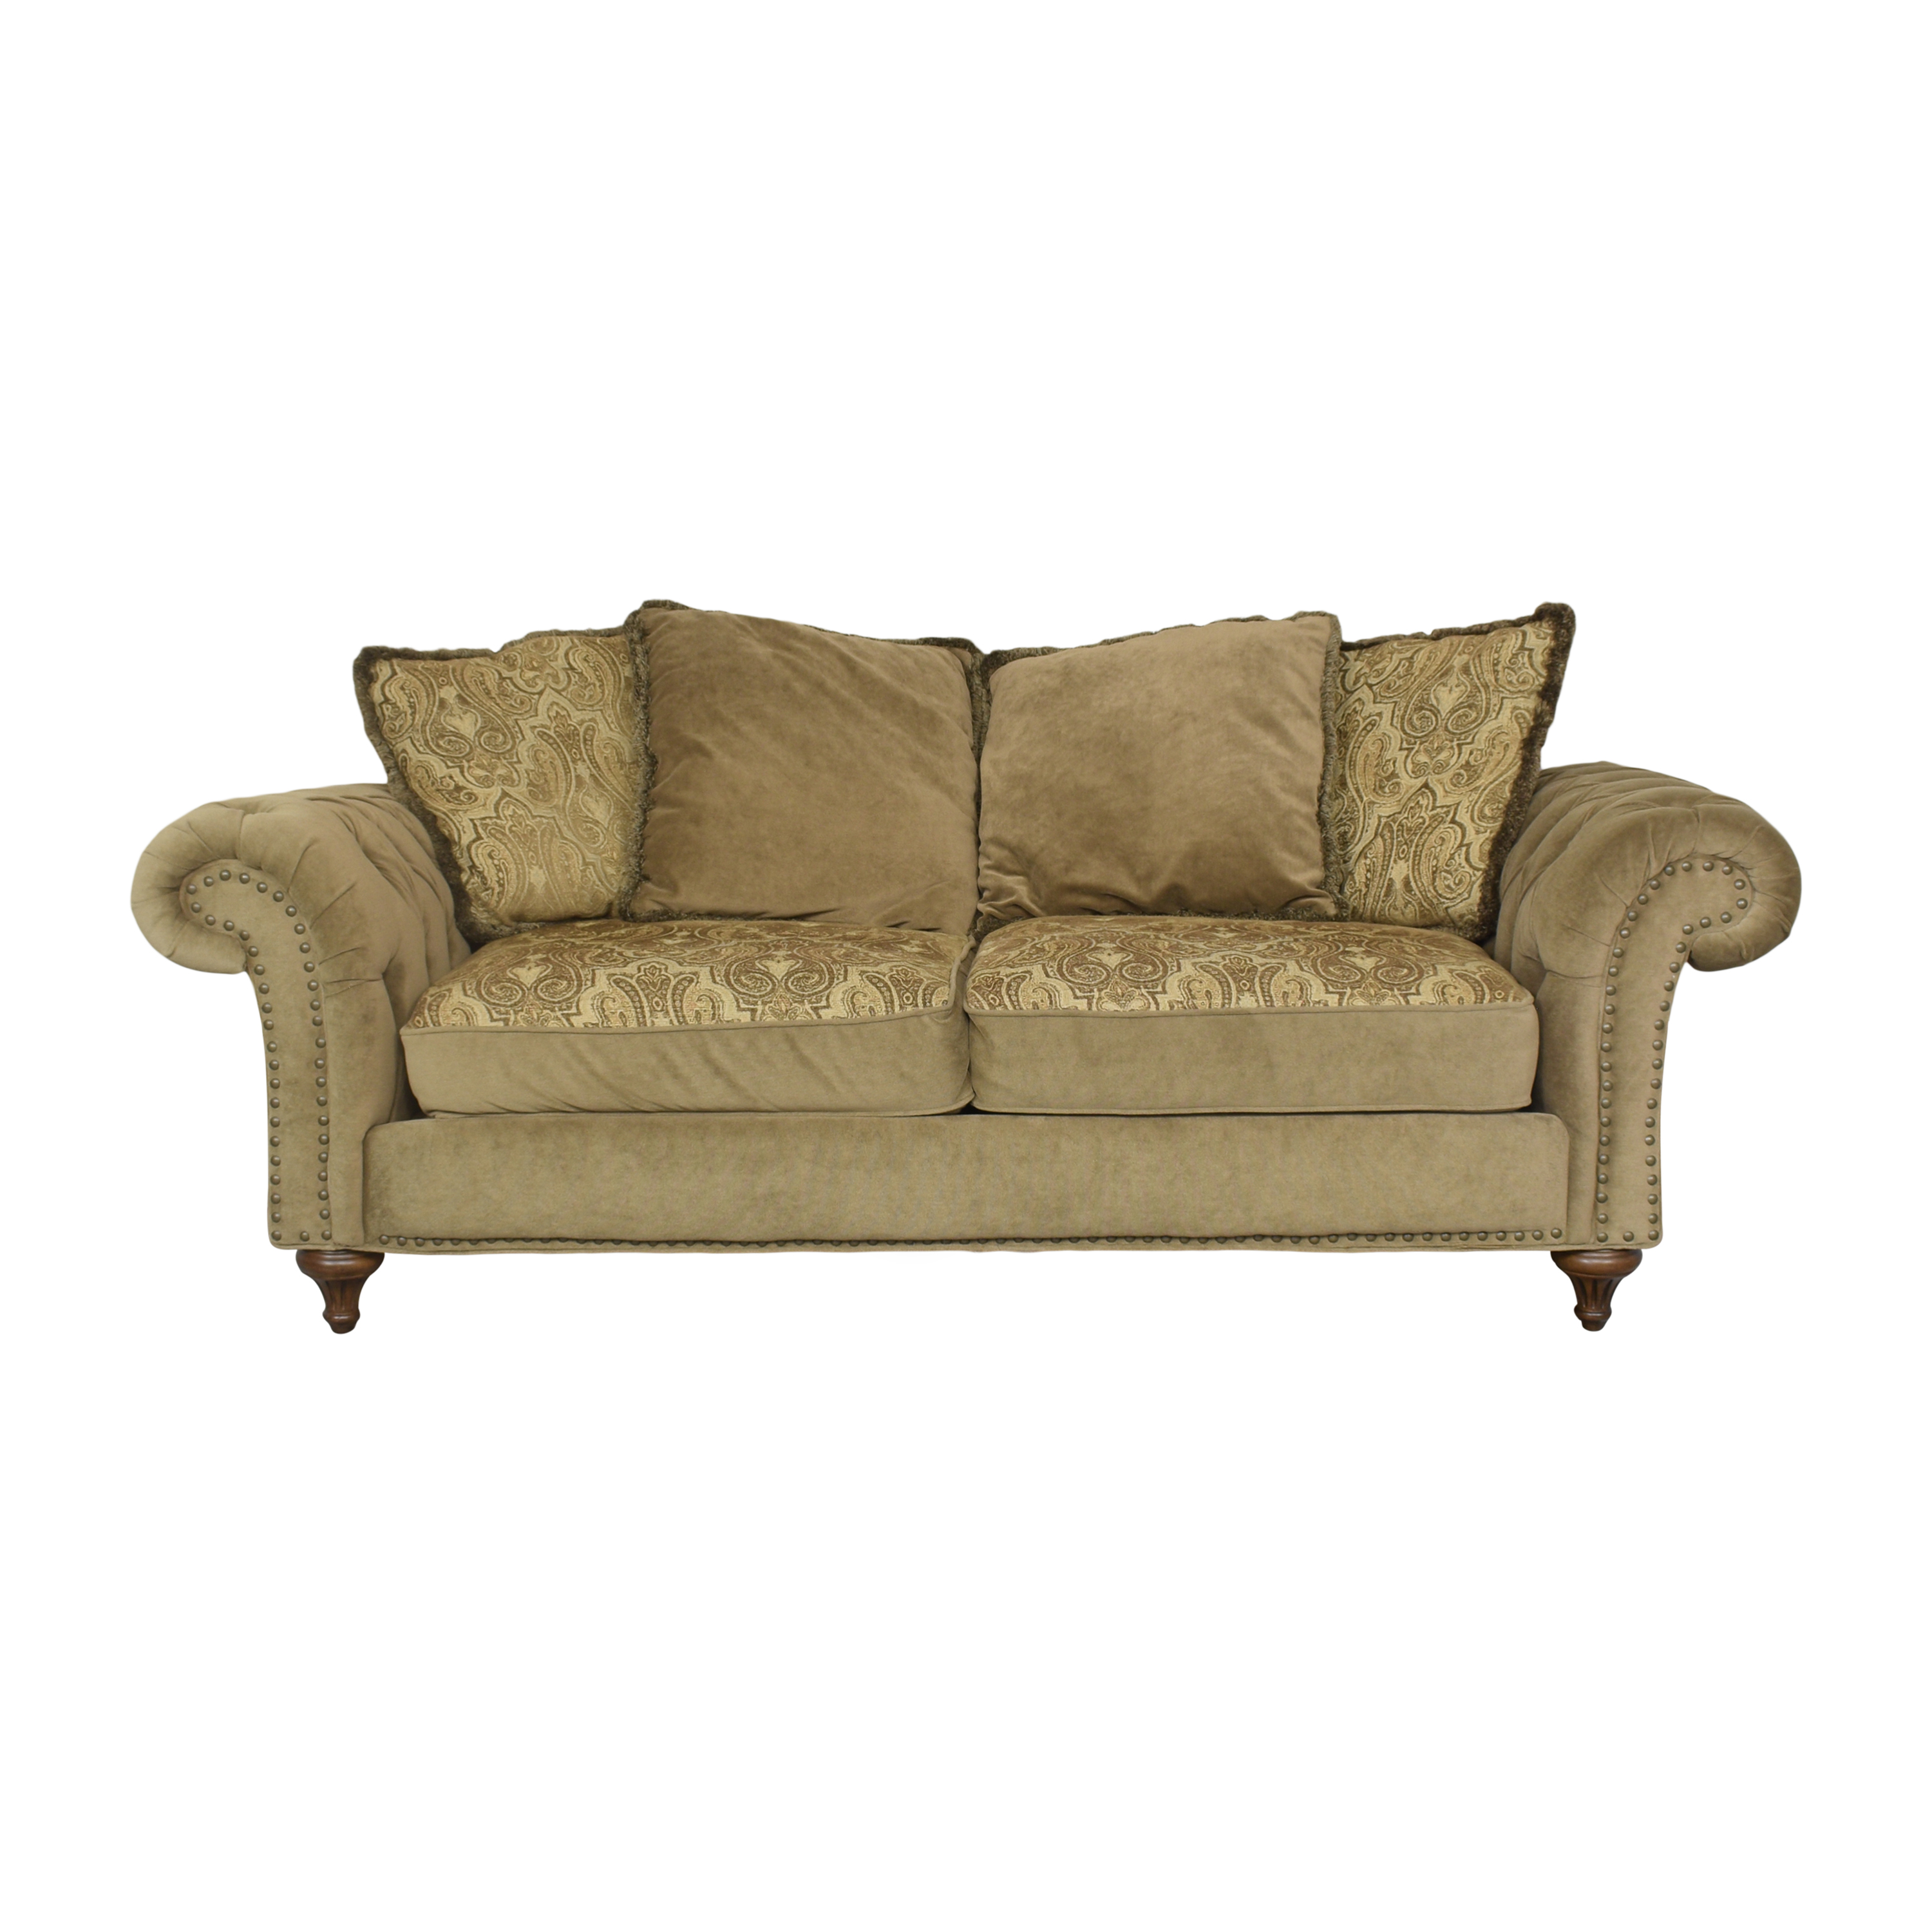 Fortunoff Fortunoff Two Cushion Roll Arm Sofa used